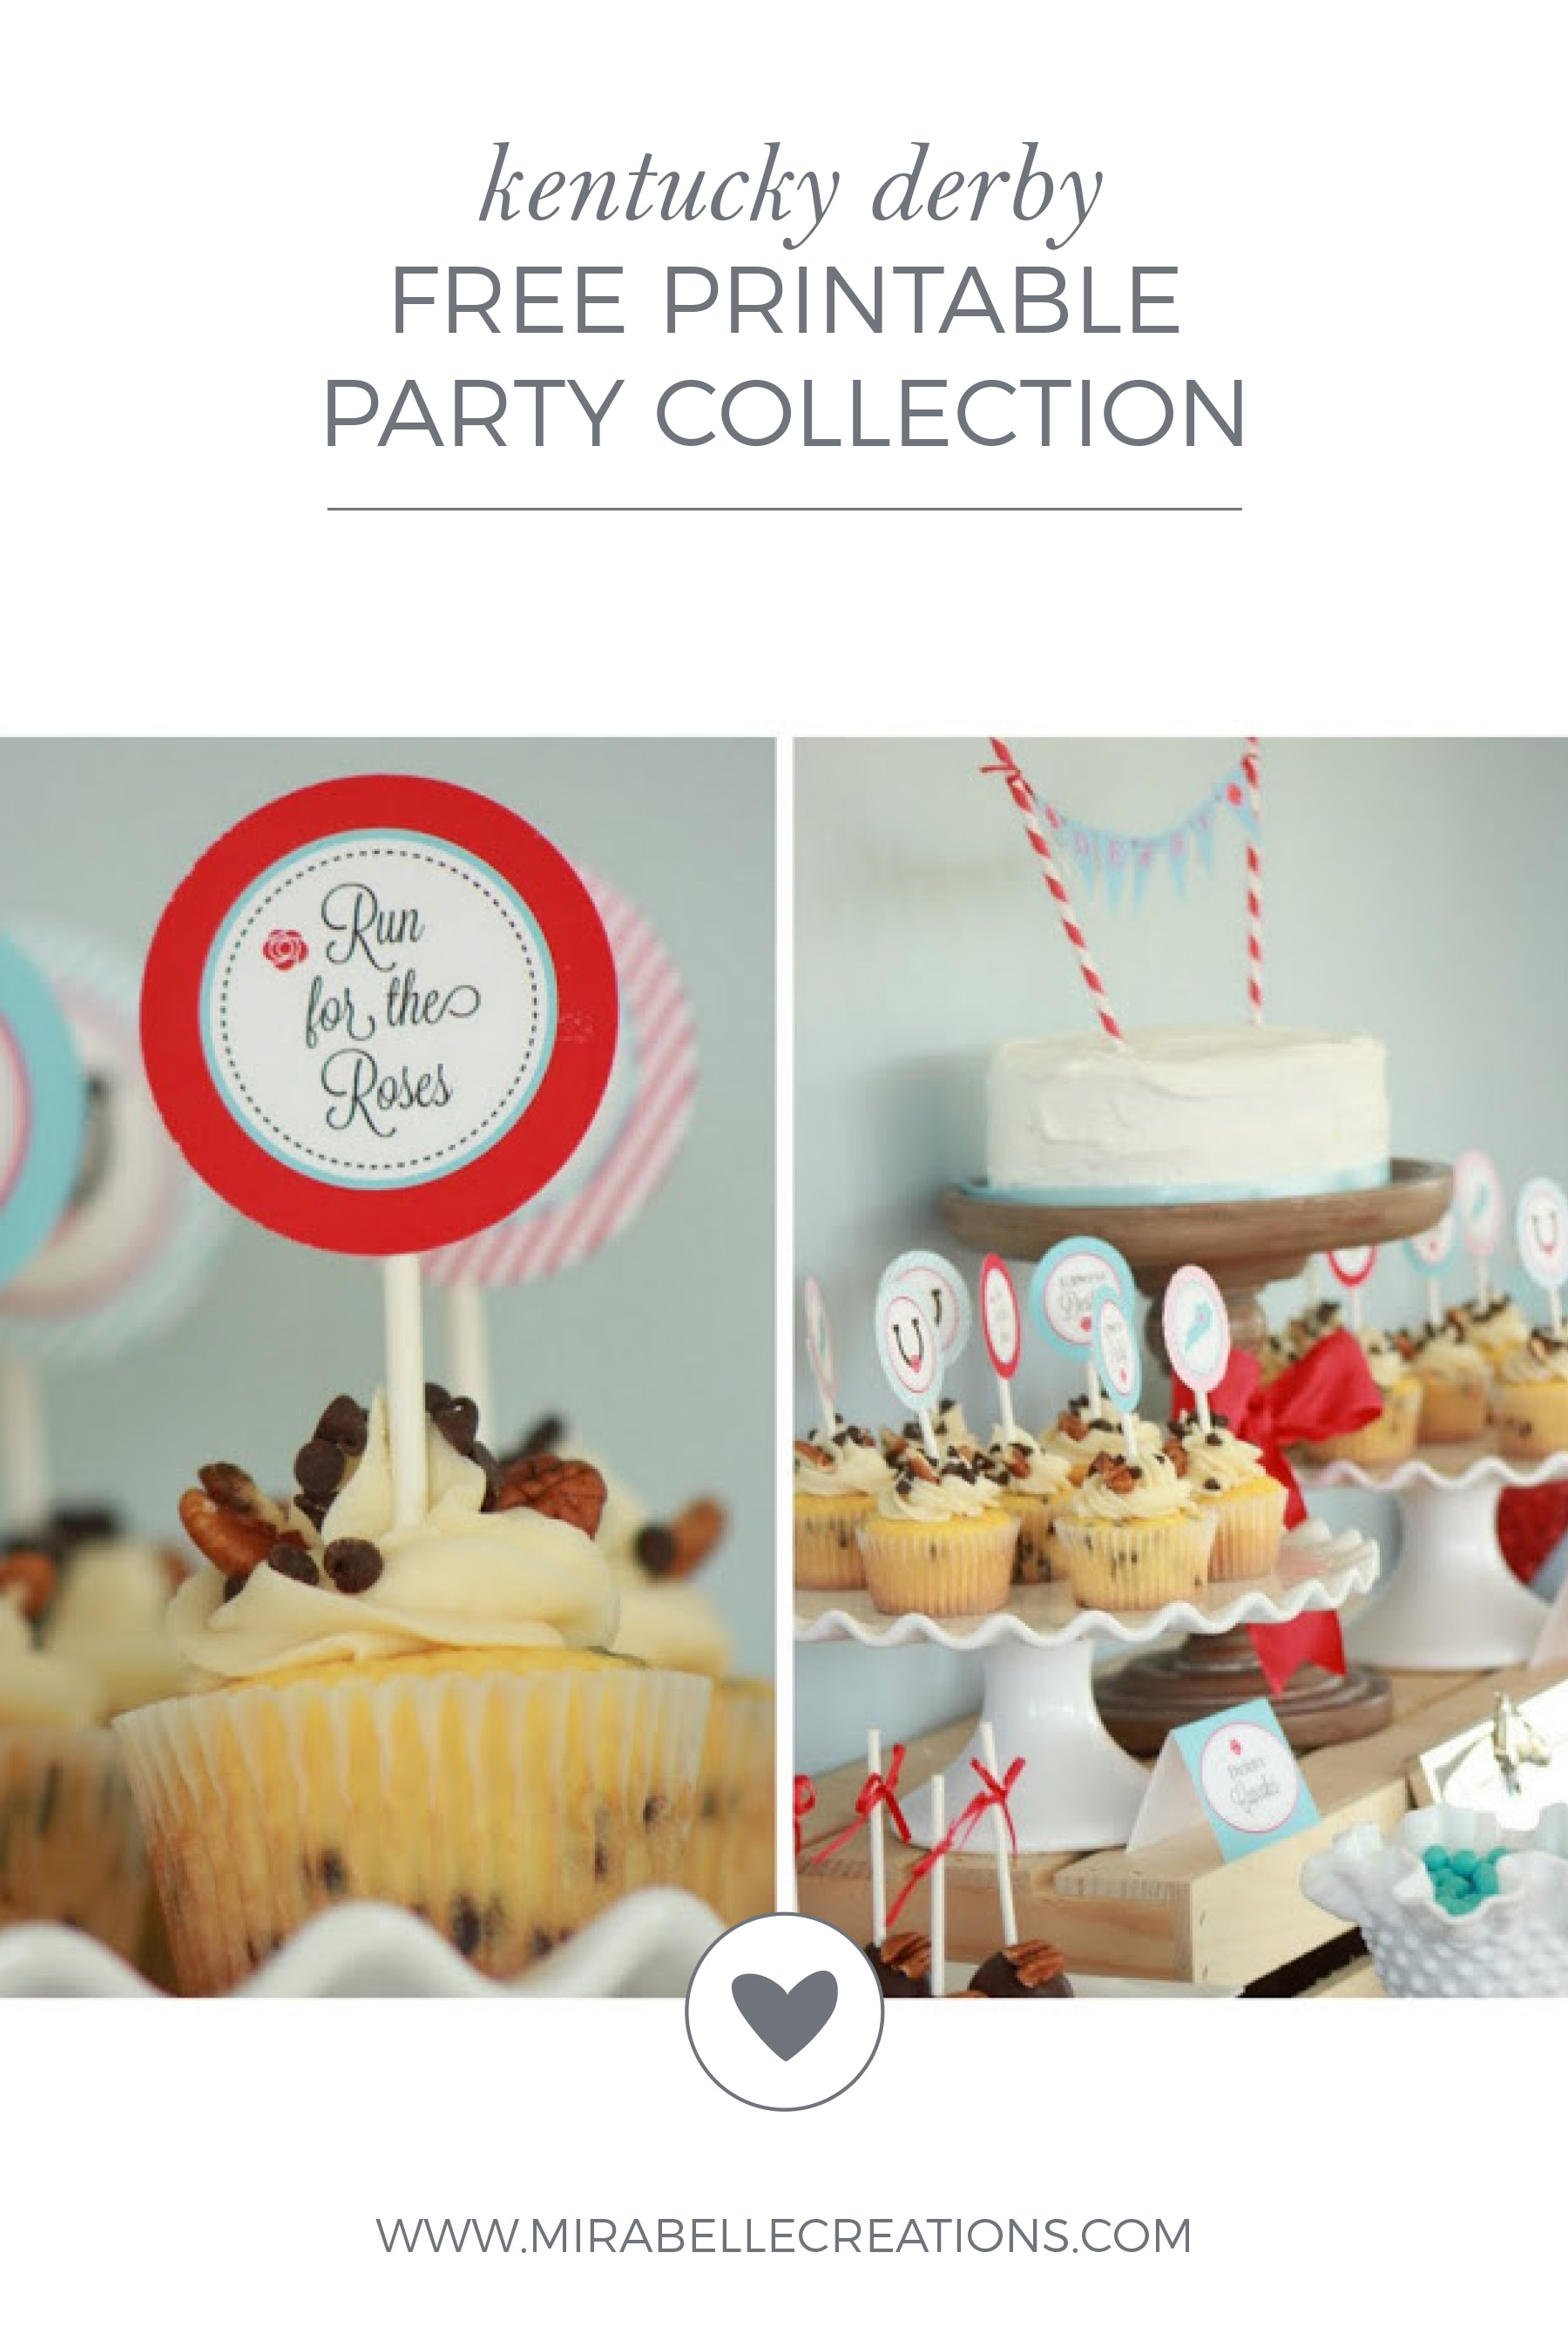 Kentucky Derby Party Free Printable Collection by Mirabelle Creations